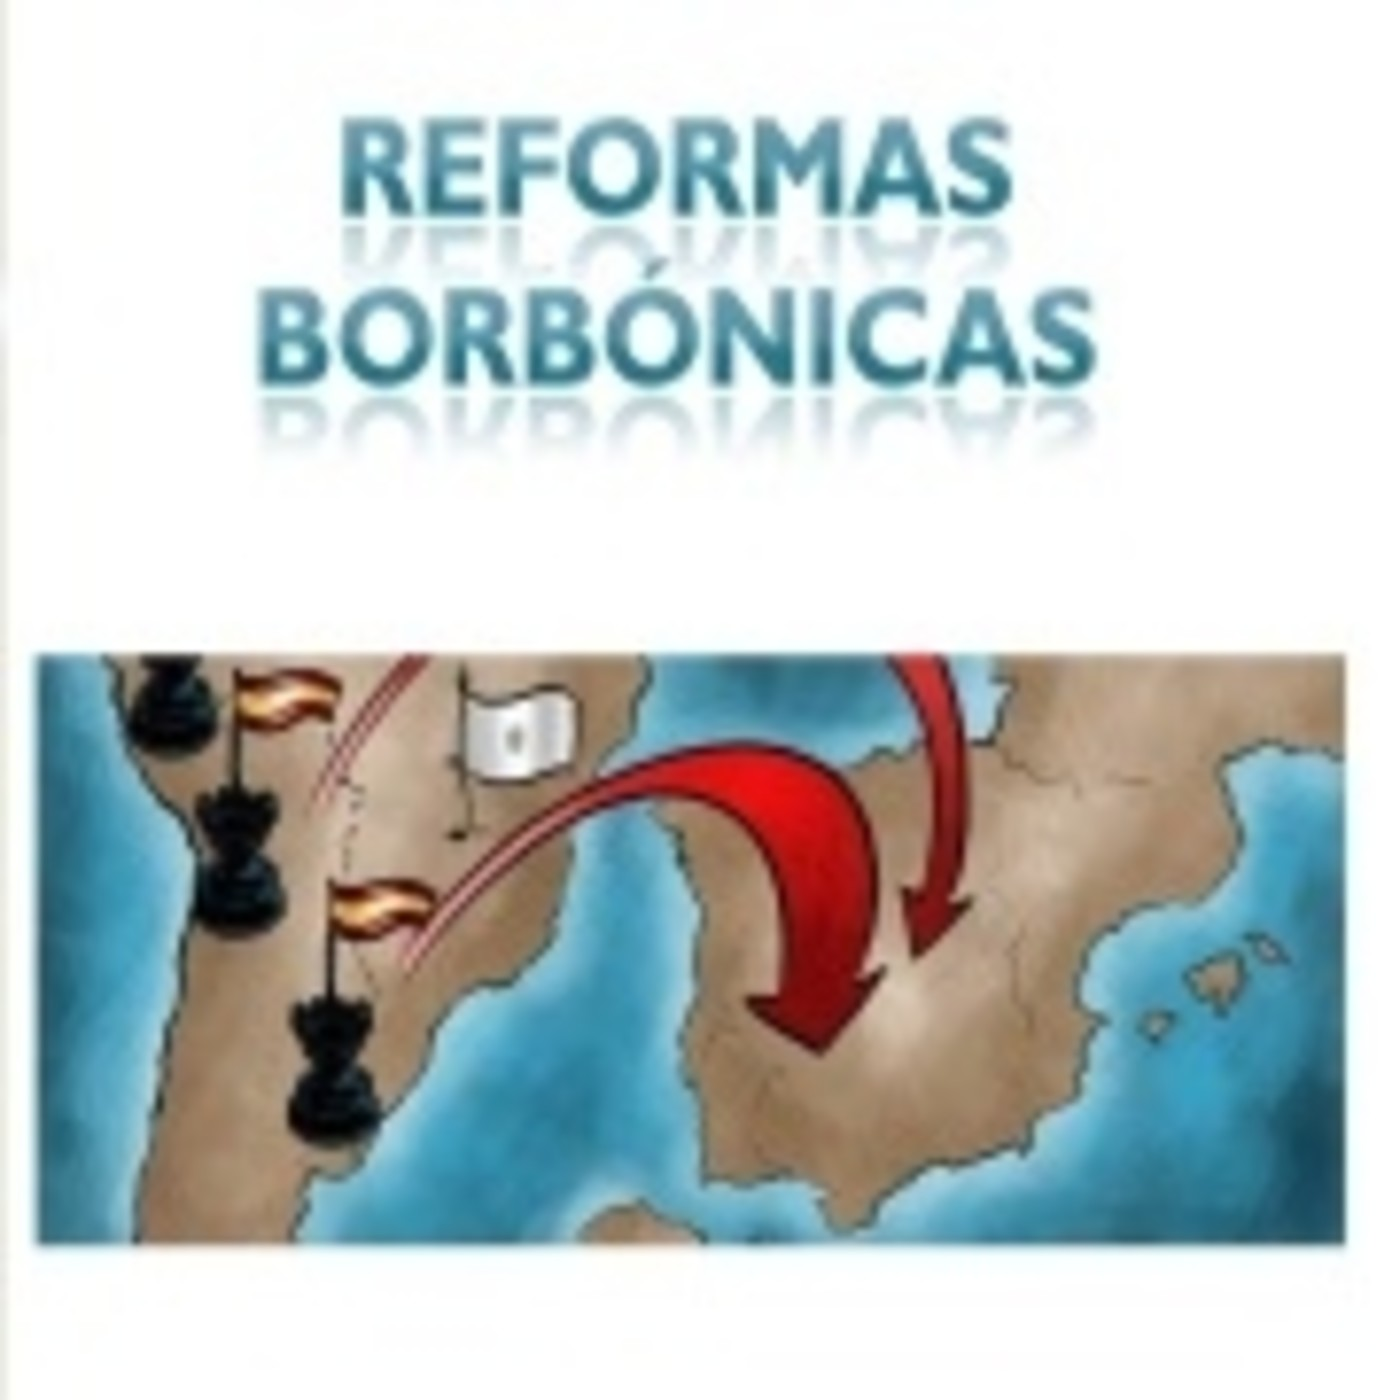 Reformas borb nicas en solo documental en mp3 06 10 a las - Reformas economicas en madrid ...